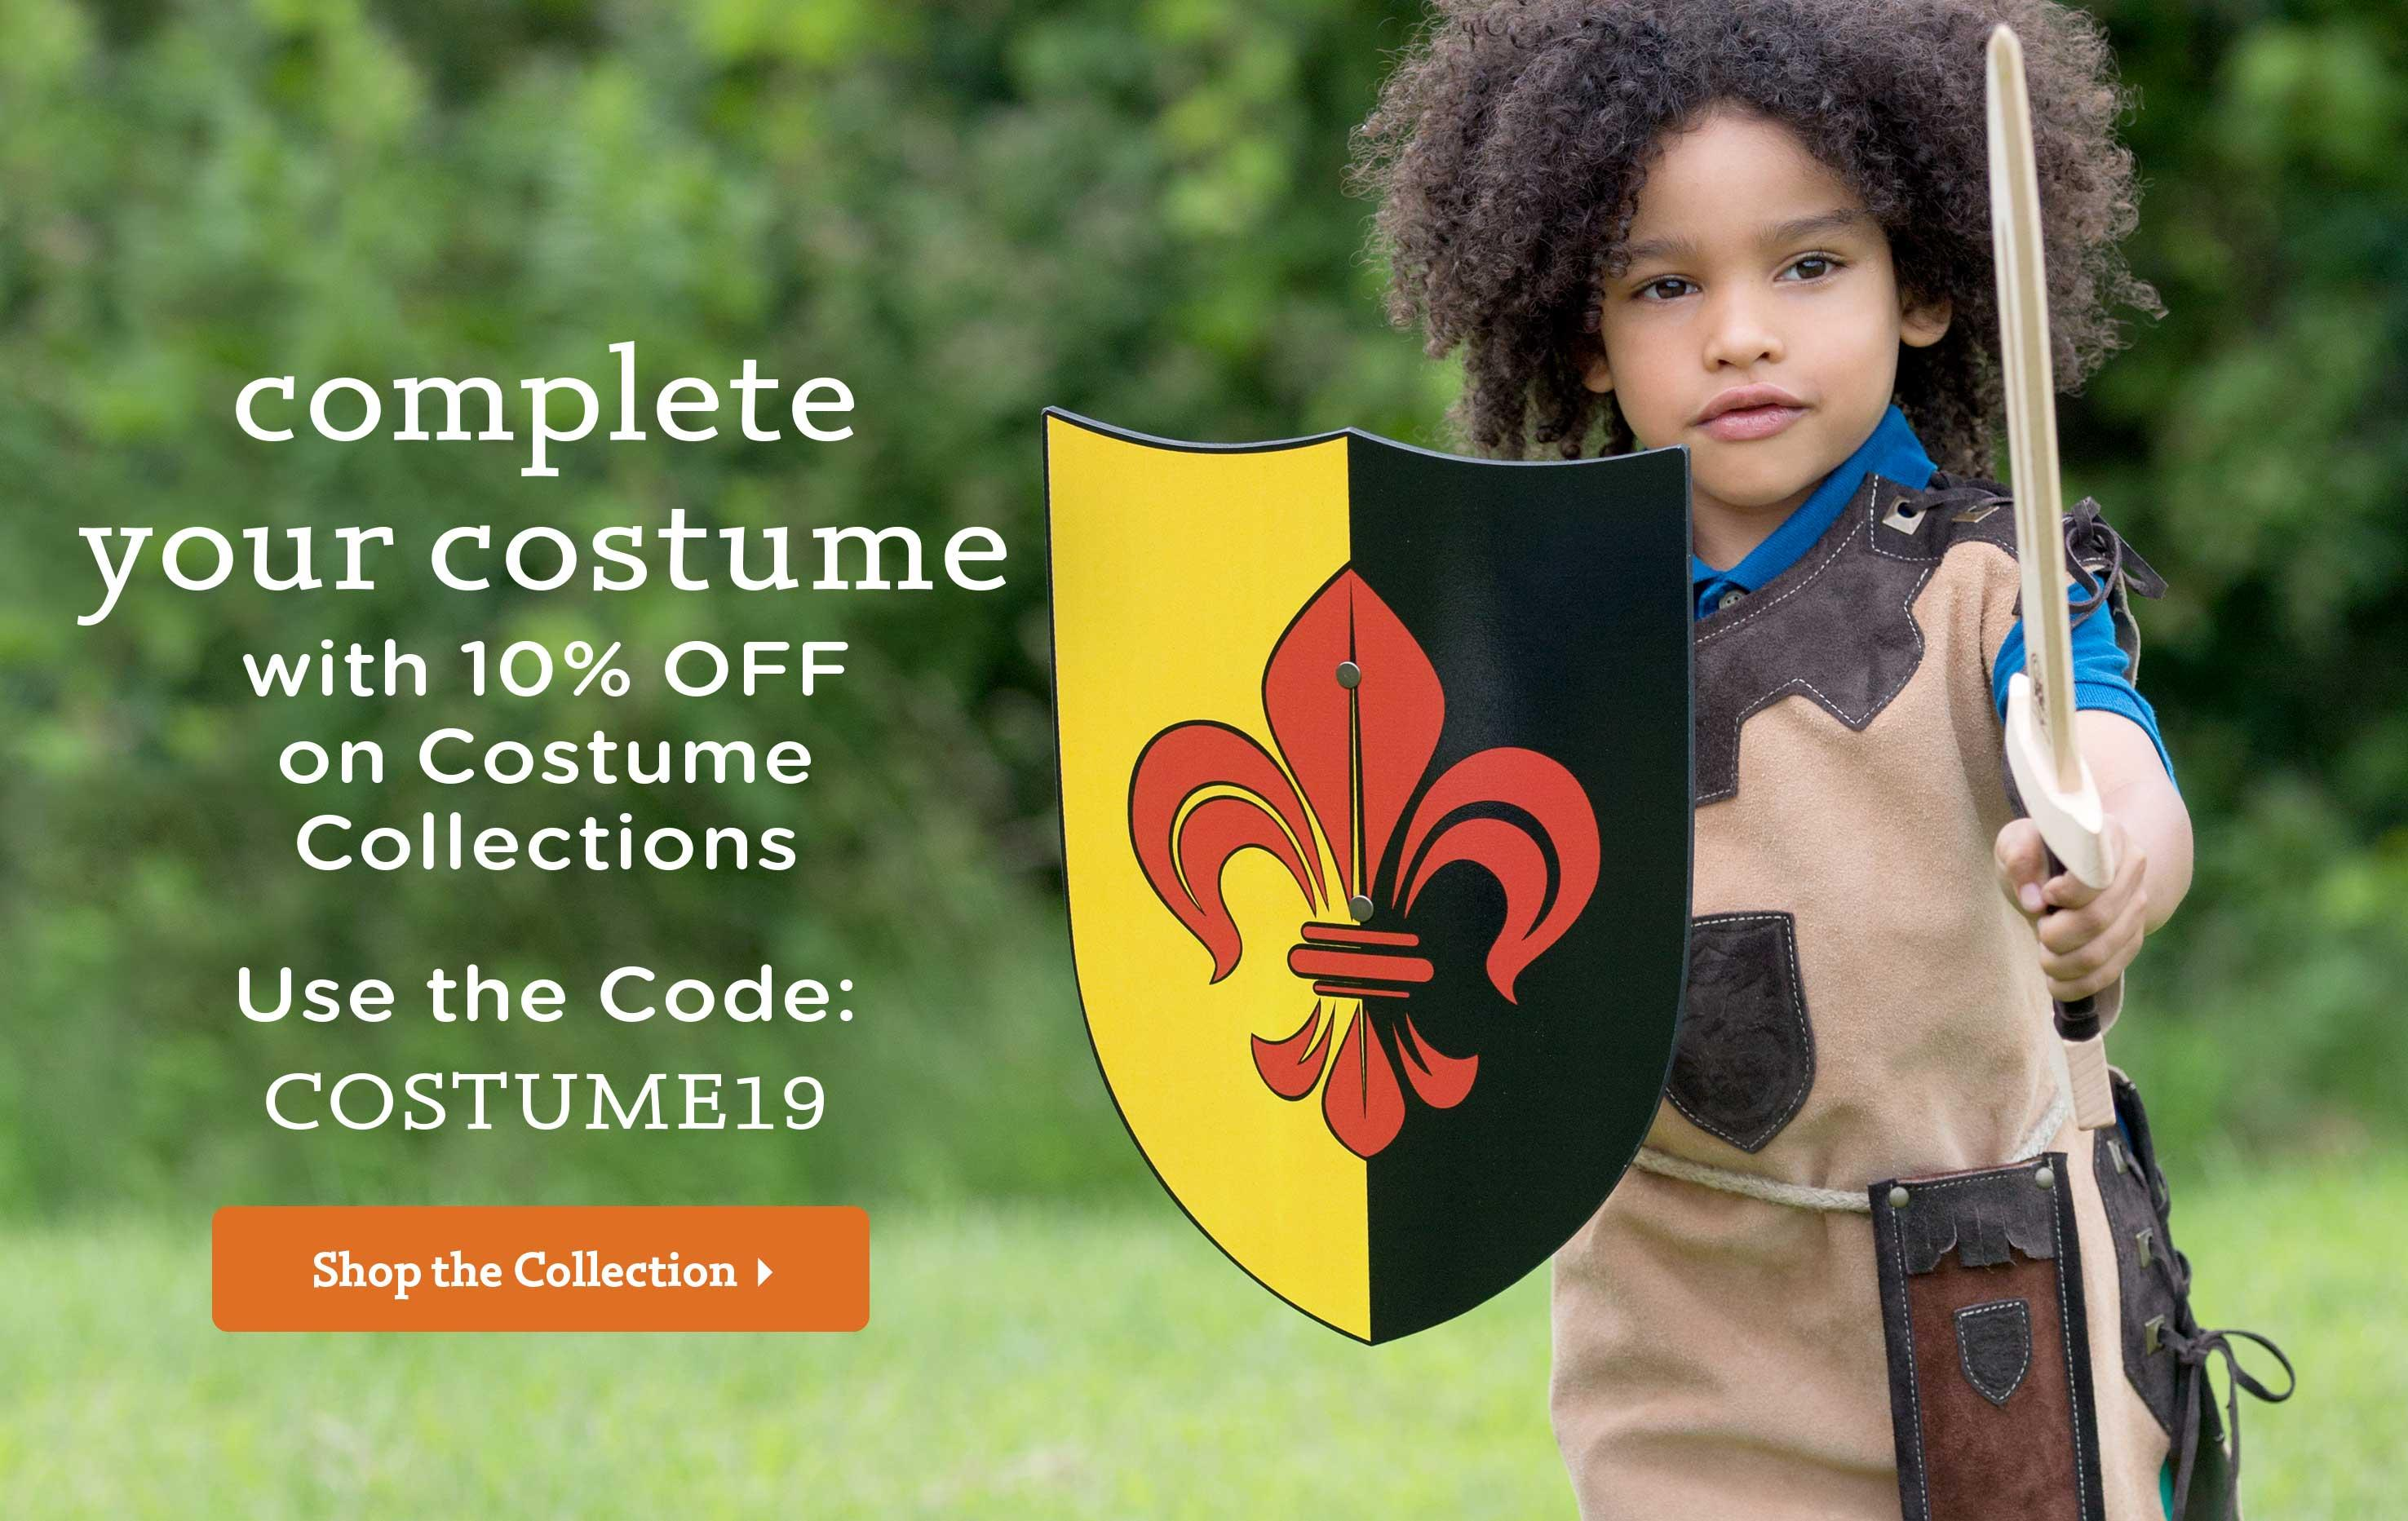 Complete Your Costume